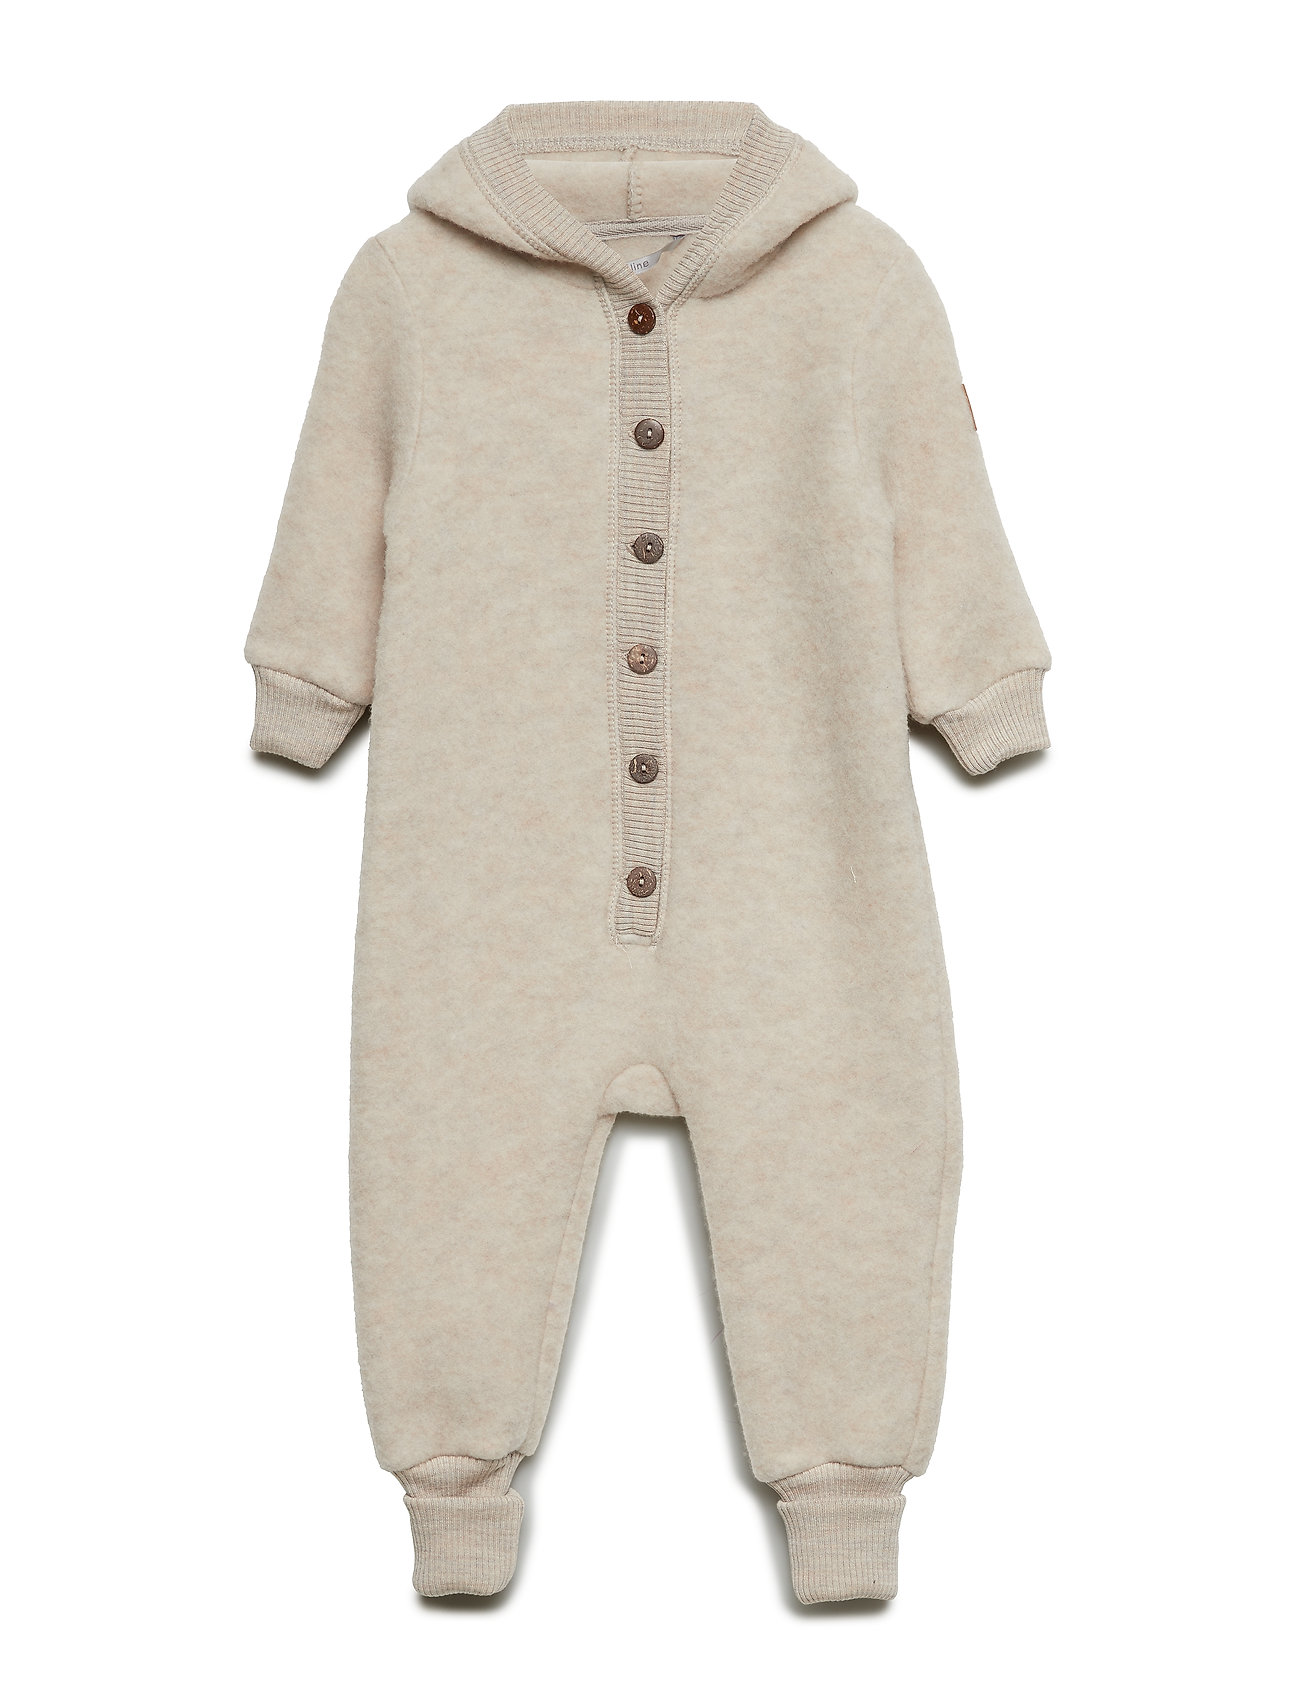 Wool Baby Suit W/Hat Mikk-Line Fleece til Børn i